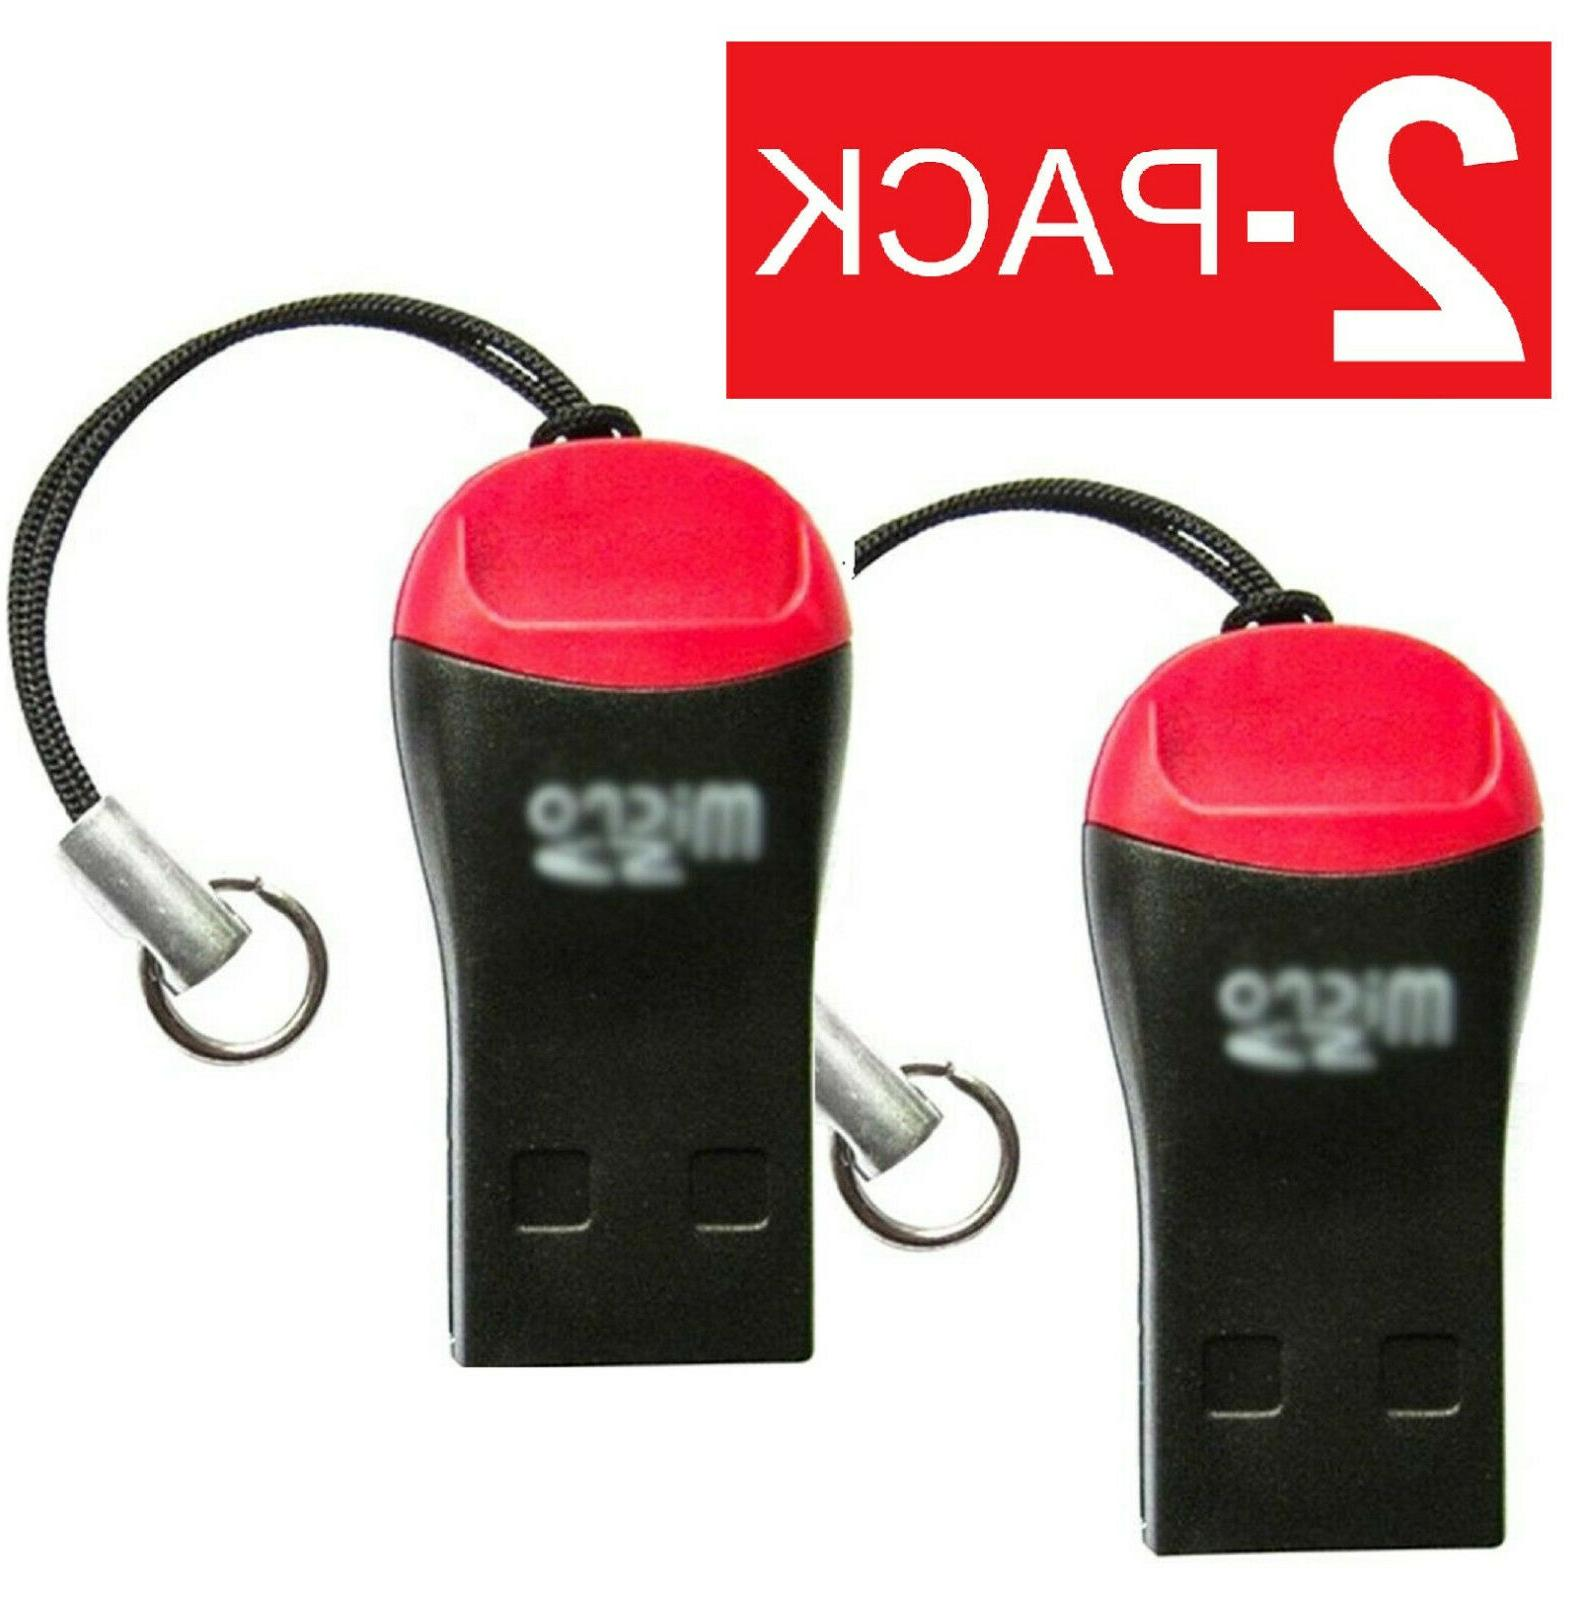 2 pacl memory adapters to usb 2